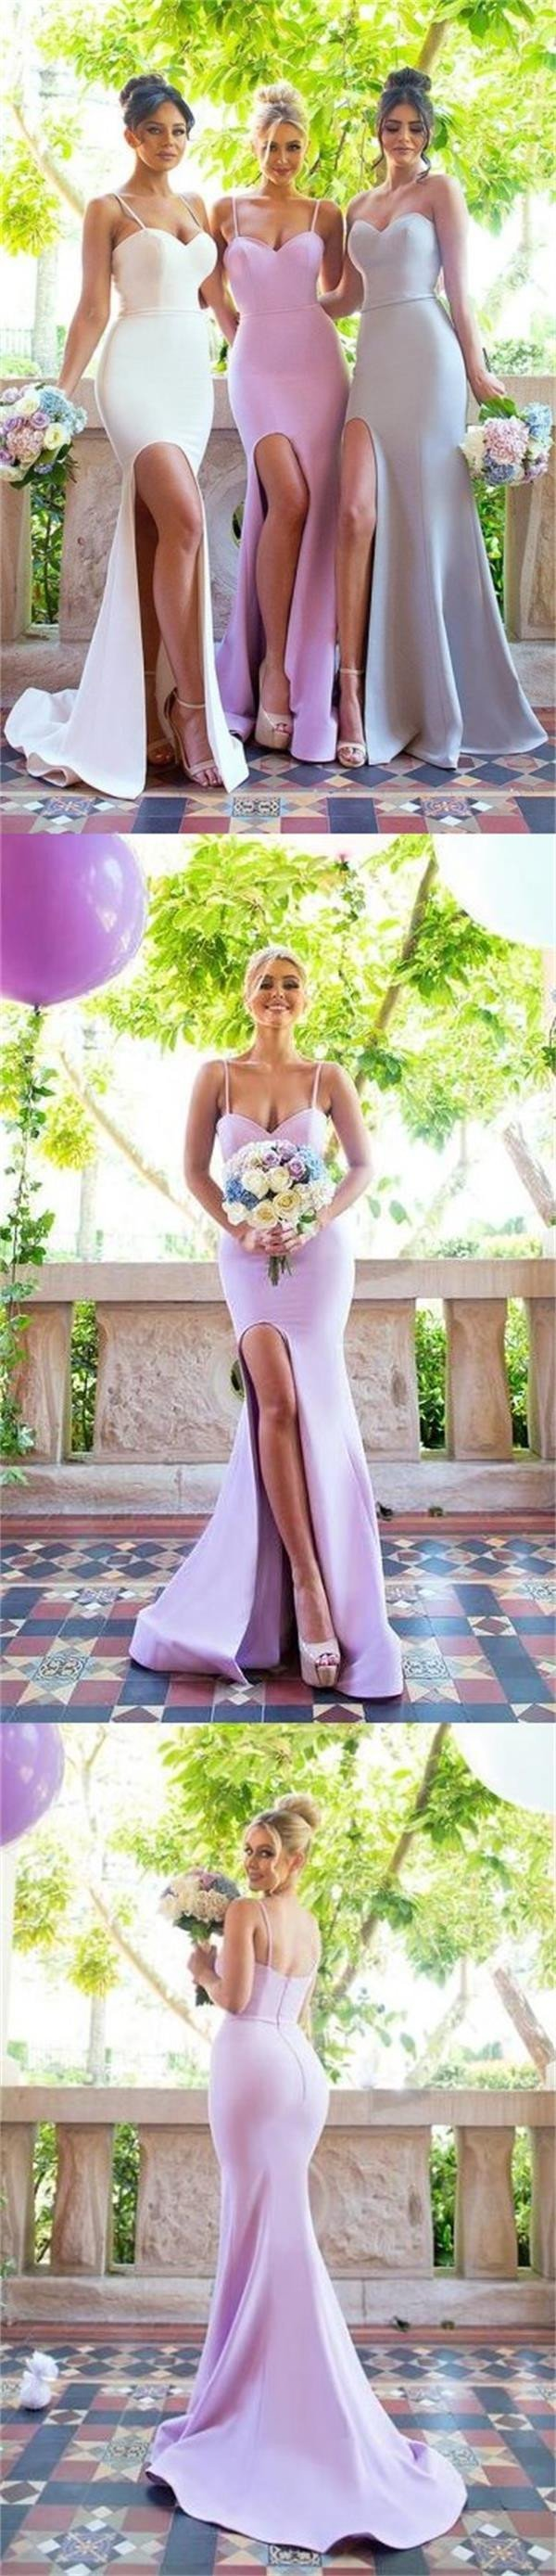 2018 Mermaid Spaghetti Straps Sweetheart Simple Bridesmaid Dresses with small train, PD0361